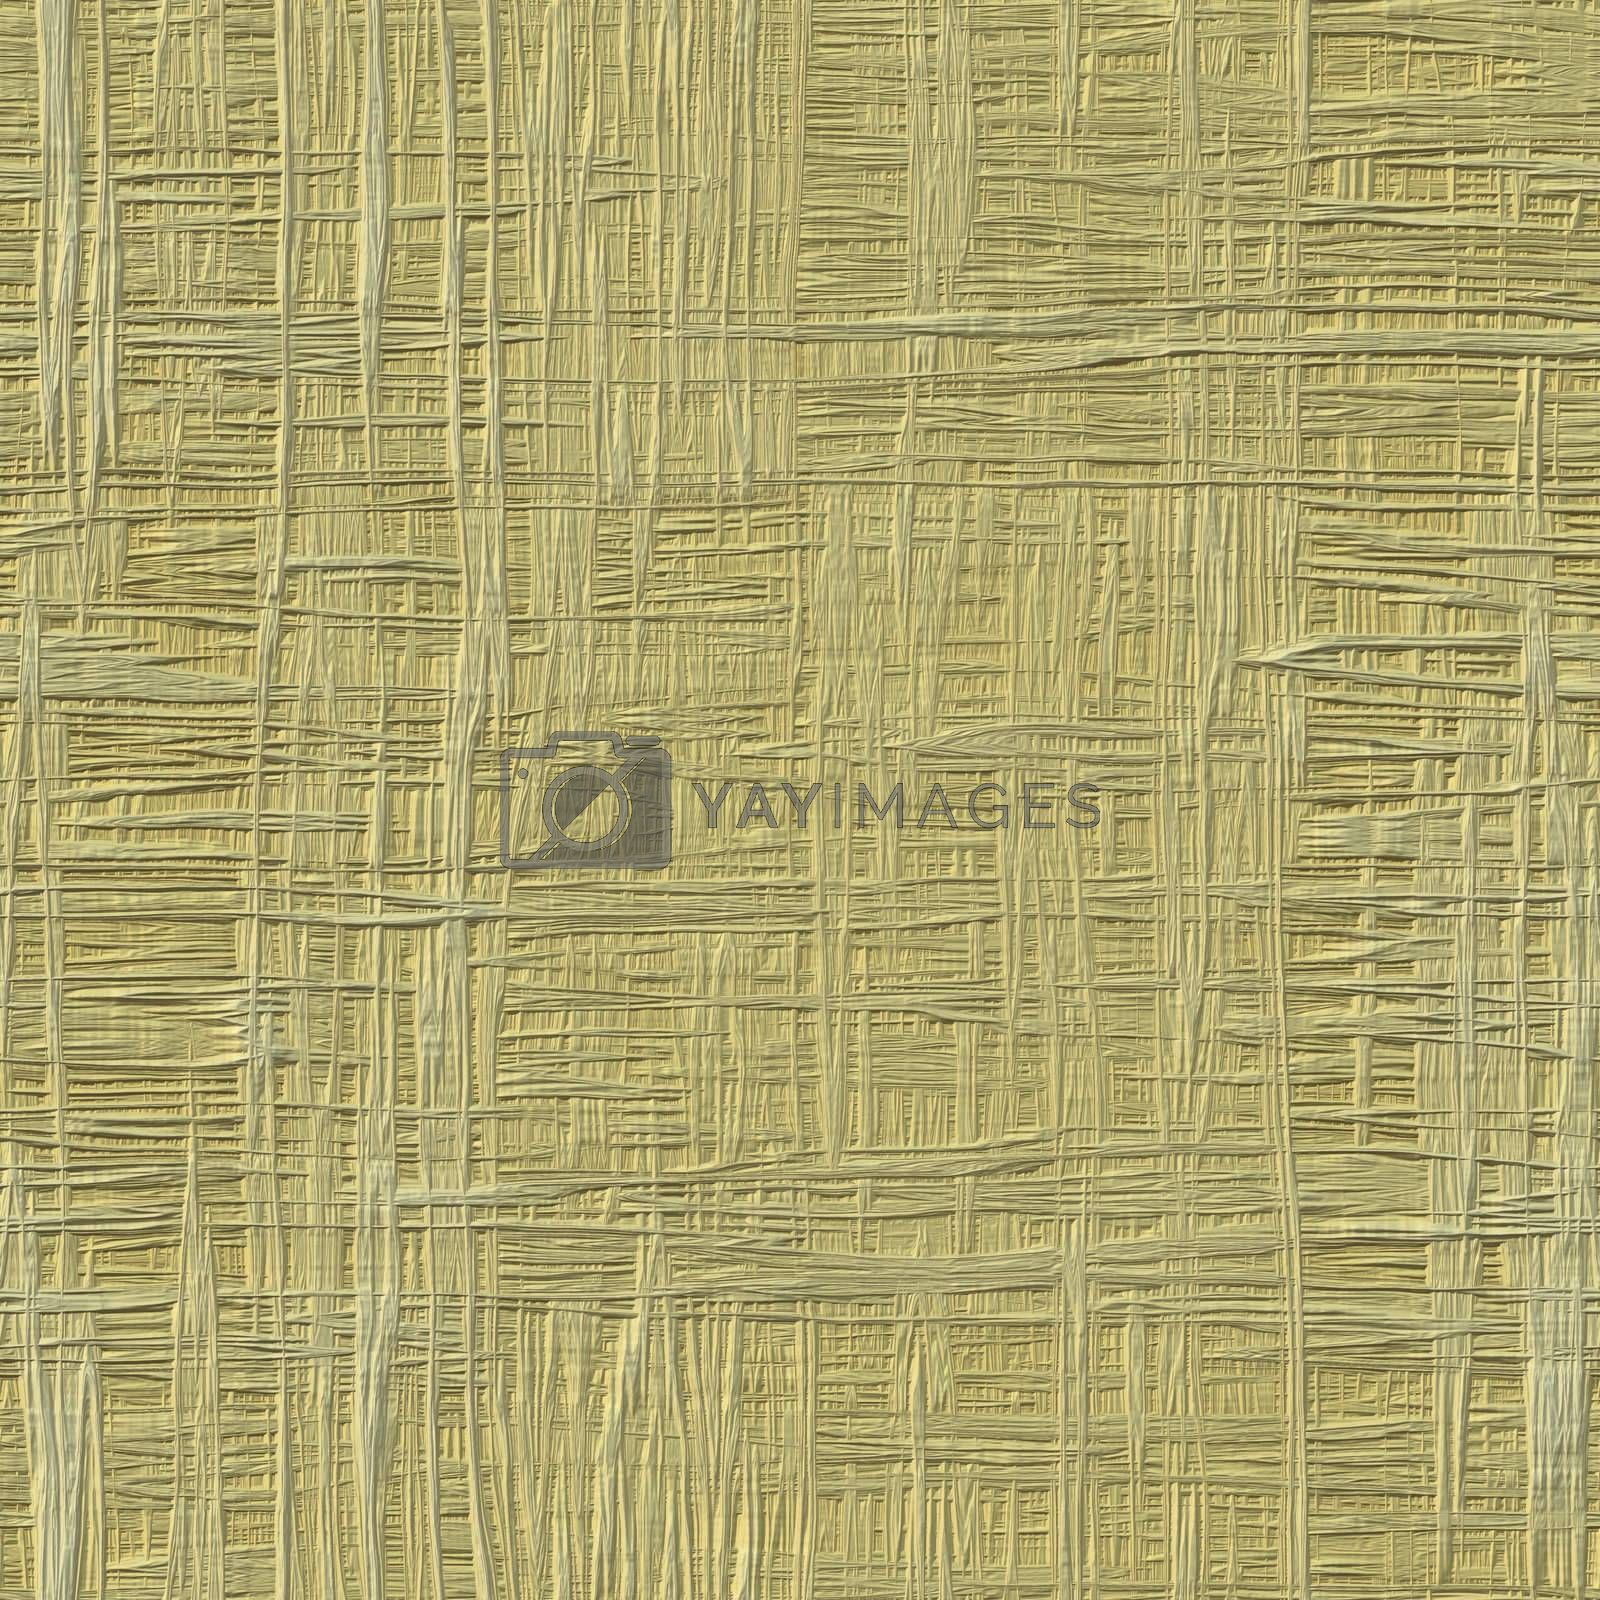 Particle board wood texture that tiles seamlessly as a pattern in any direction.